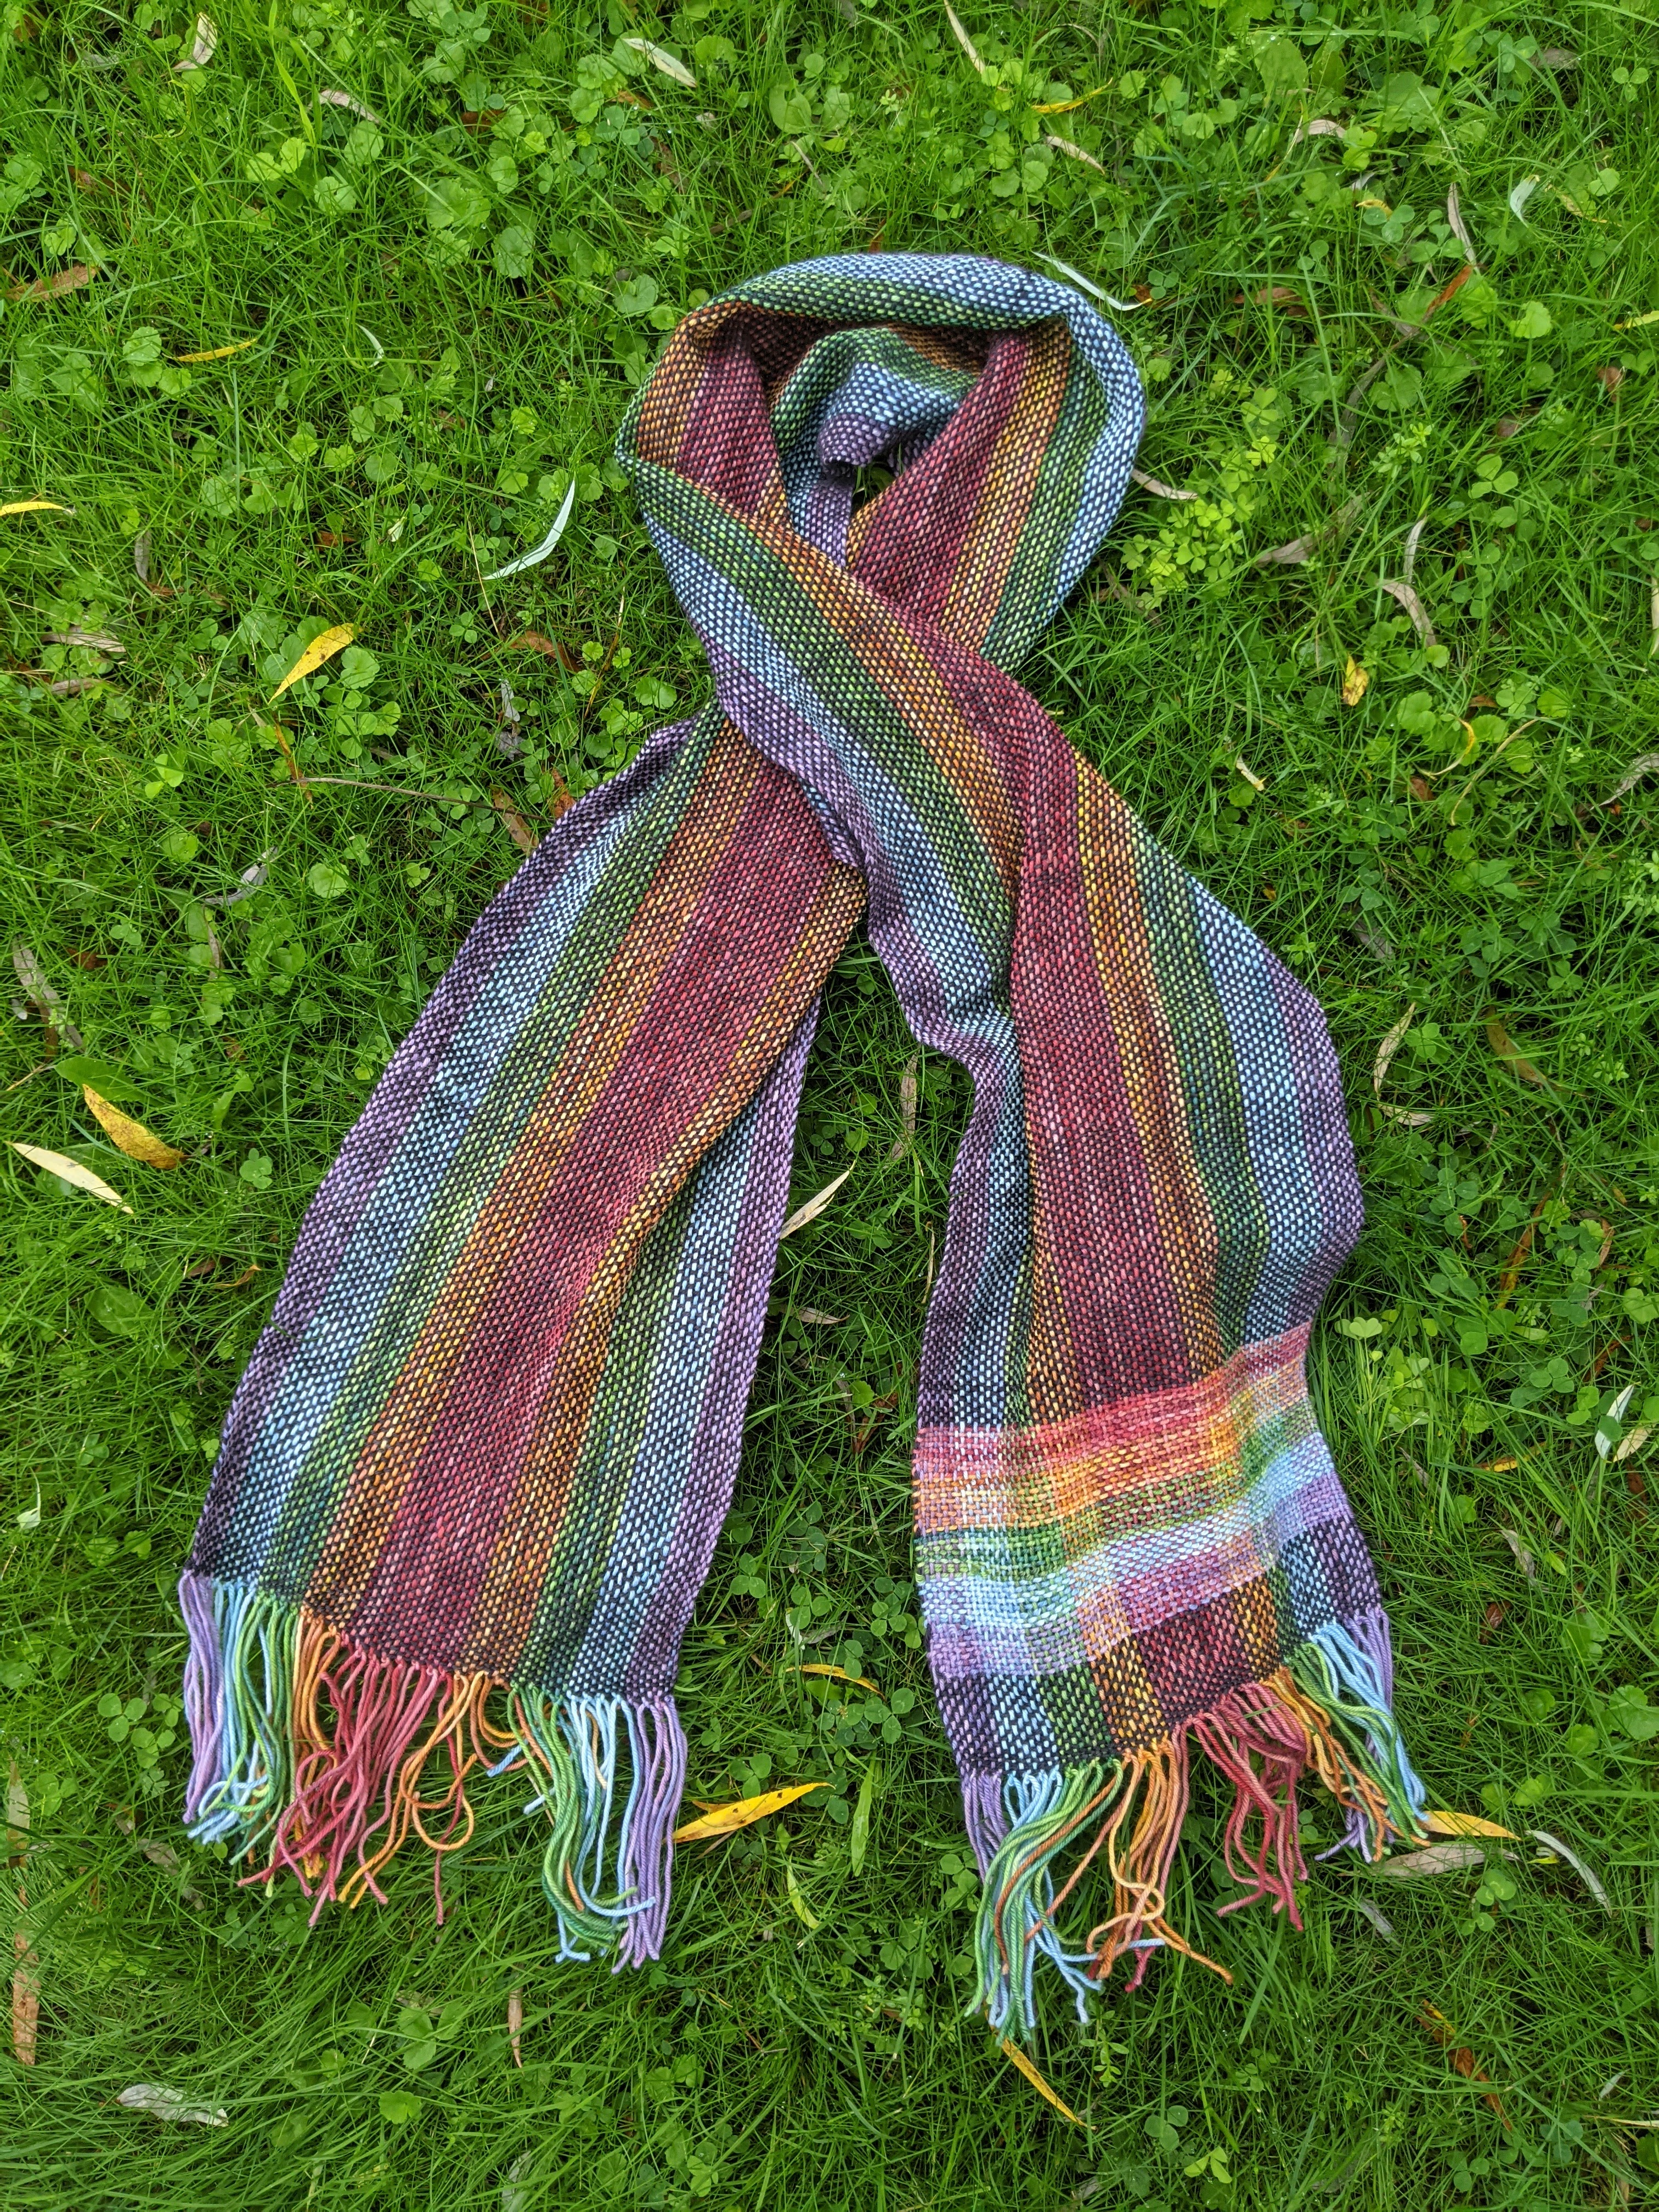 A rainbow woven scarf laying gently crossed on green grass.